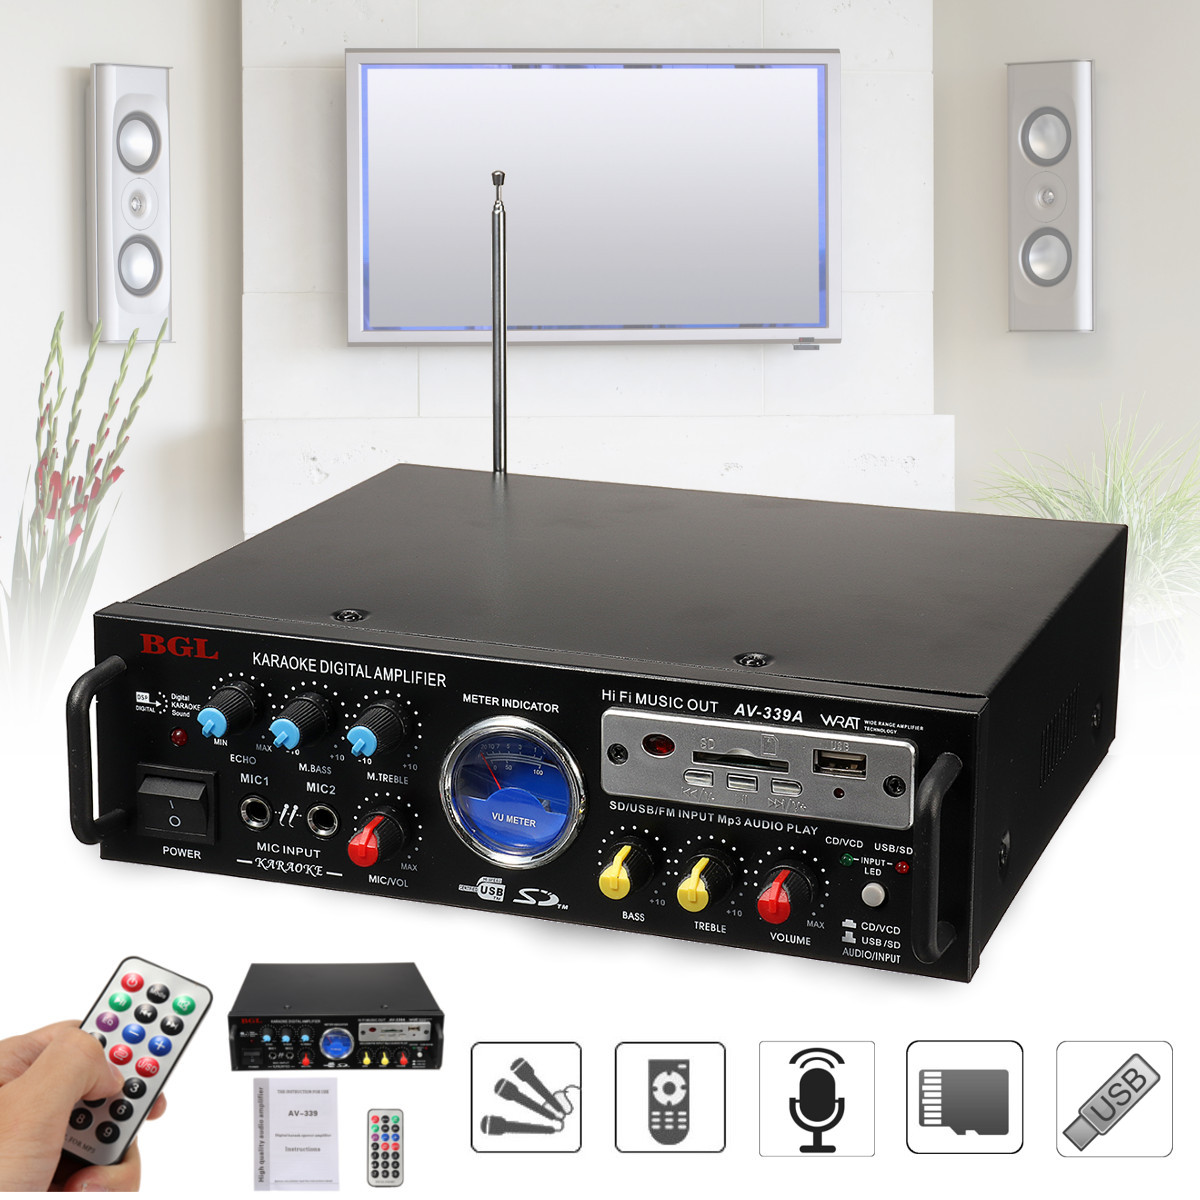 Stereo Amplifier 12v 220v 5.1 Channel Audio Power HiFi APE Dual Microphone Interface Speaker With Remote Control For Car Home